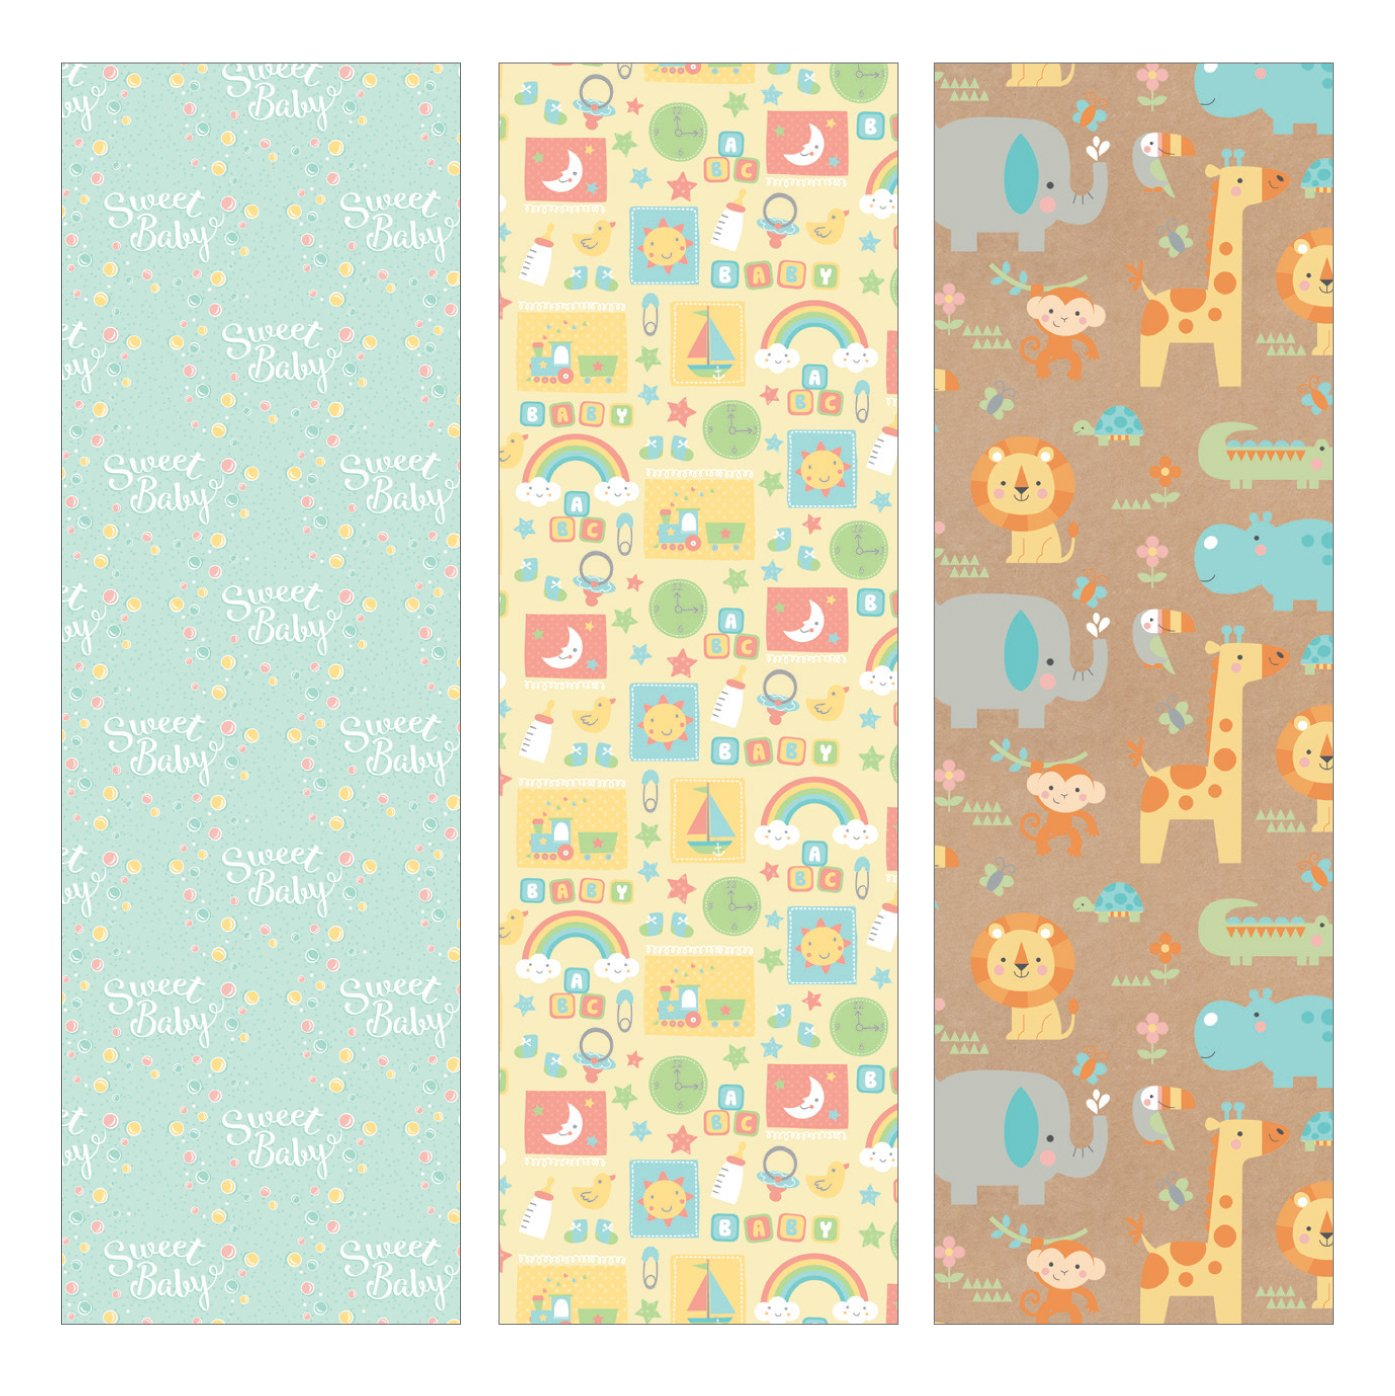 Amazon.com: Pack of 3 Rolls of Baby Shower Wrapping Paper 3 Different Gift  Wrap 8ft x 30in Rolls Included Newborn Baby Designs.: Health & Personal Care